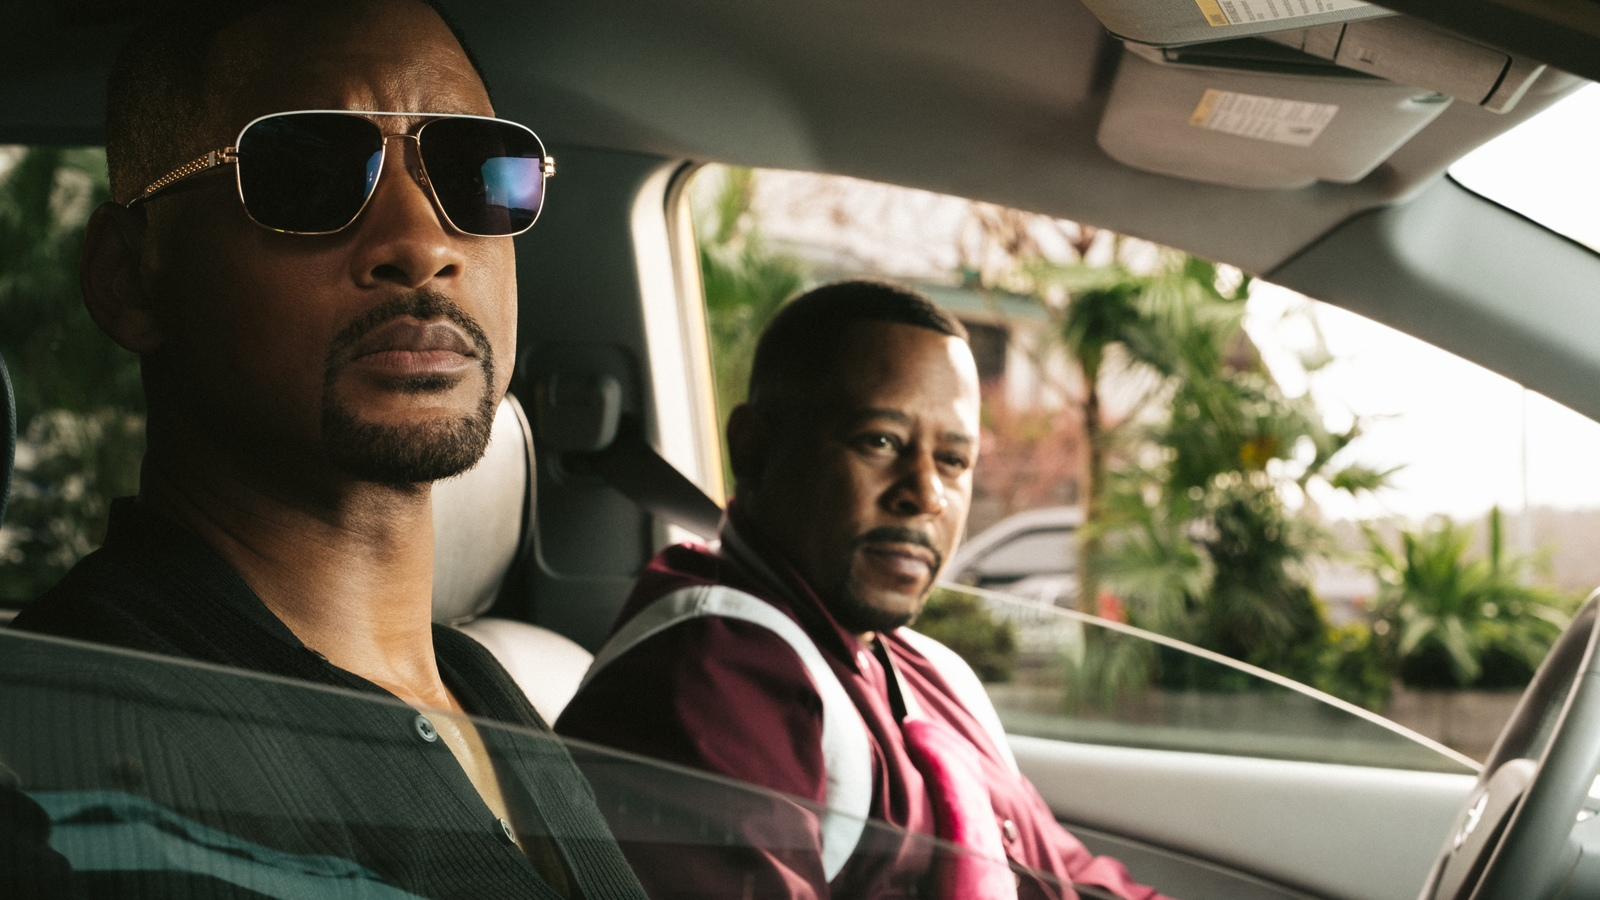 Will Smith and Martin Lawrence in Bad Boys for Life (2020)